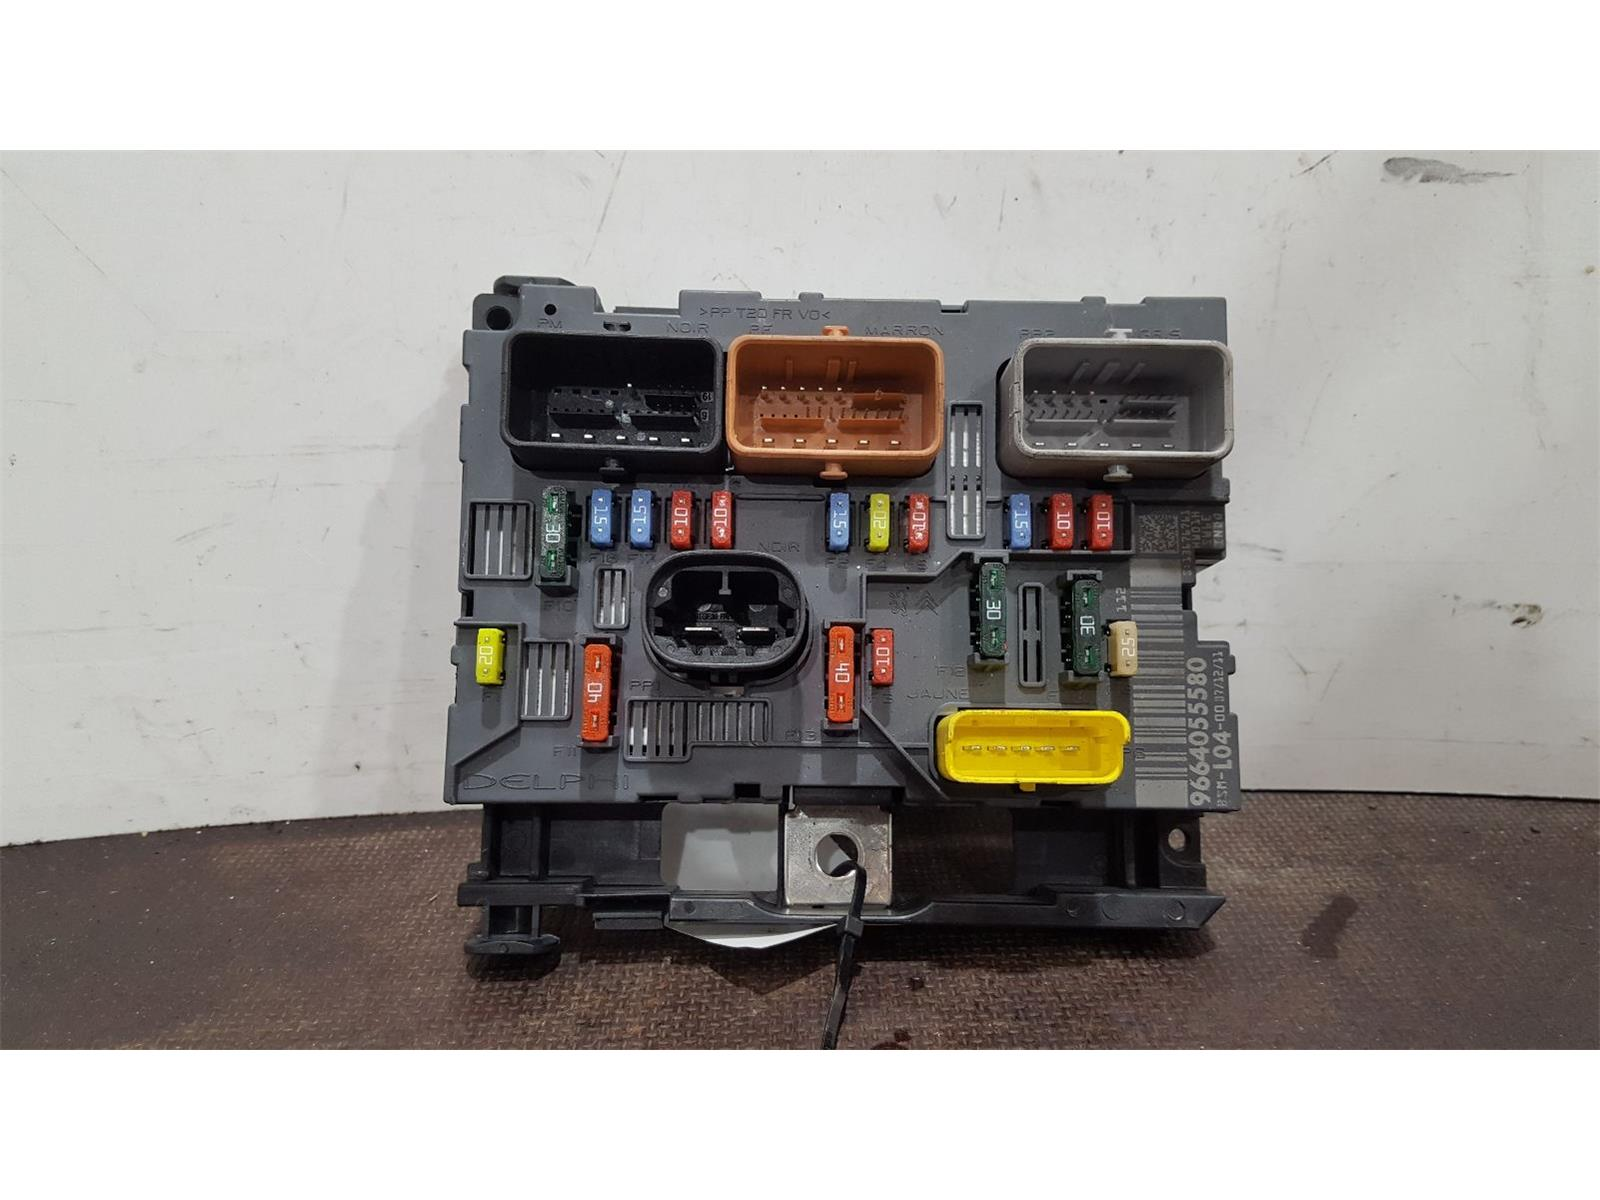 Peugeot 207 Fuse Box For Sale Explained Wiring Diagrams Audi A3 Diagram 2006 To 2009 Gti And Relay 1 Used Spare